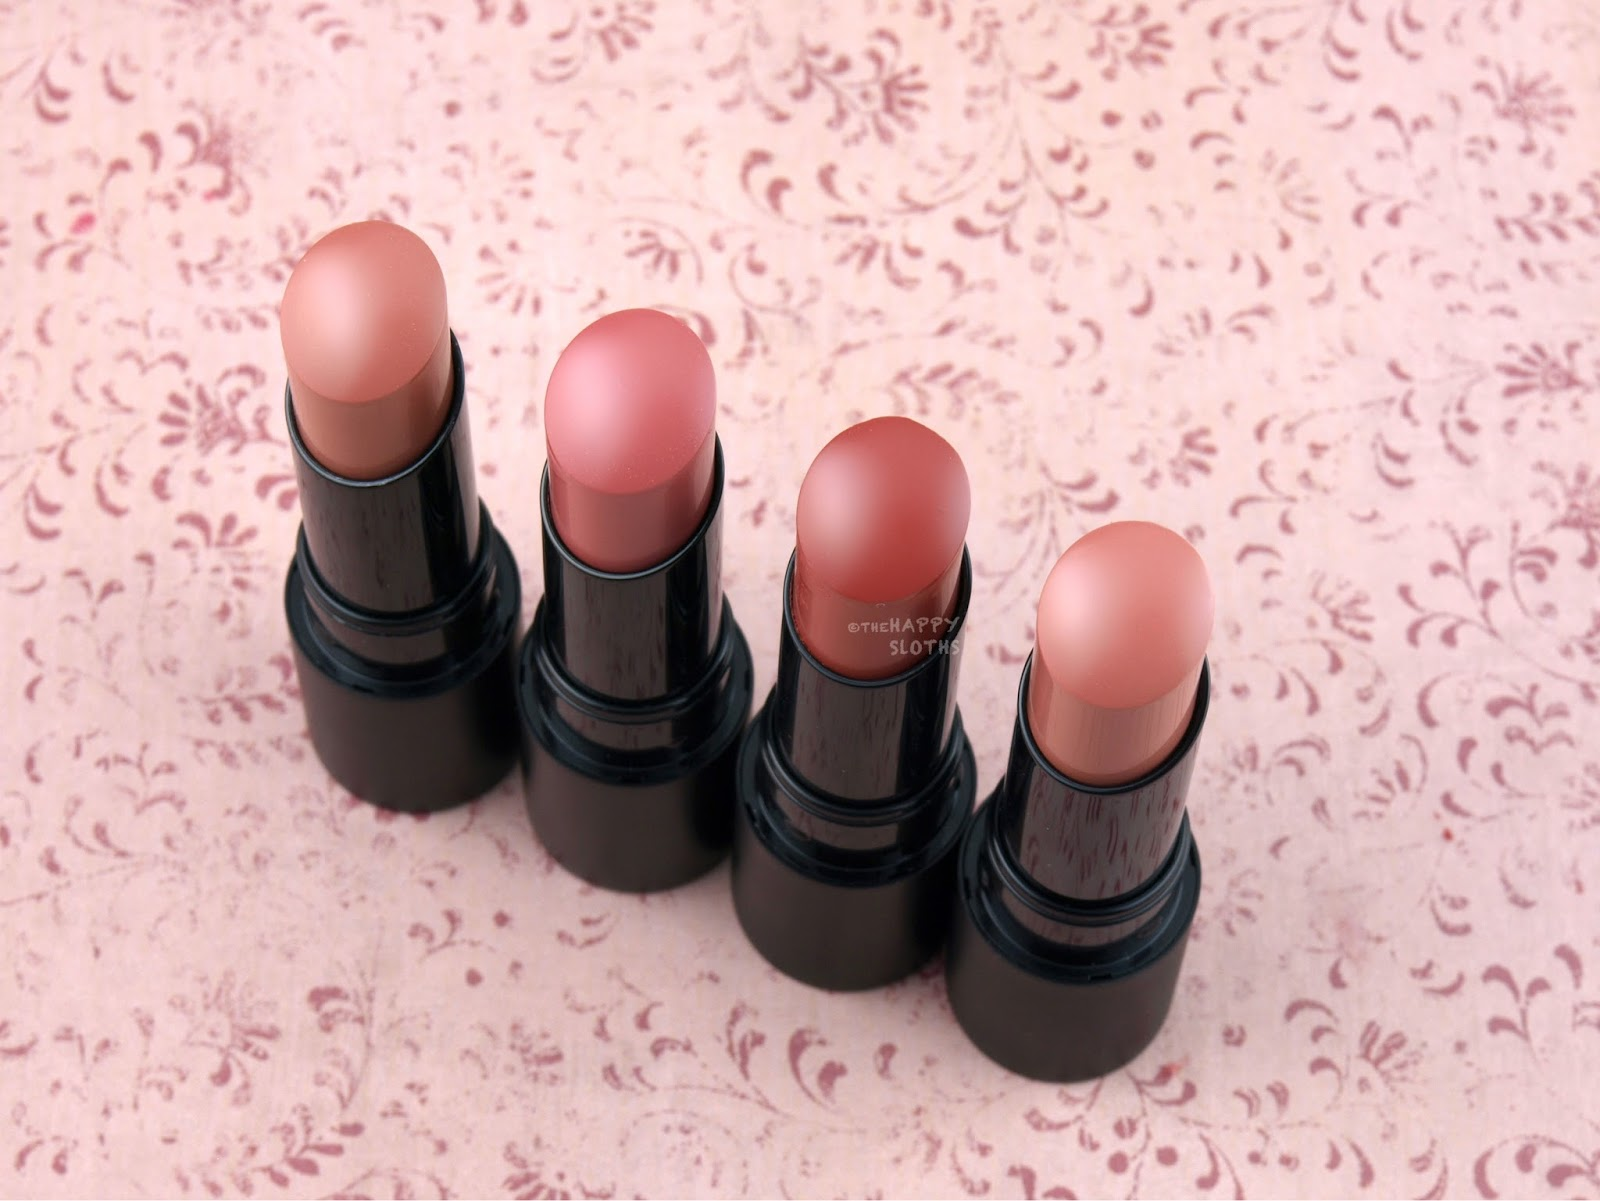 bareMinerals GEN NUDE Radiant Lipstick: Review and Swatches